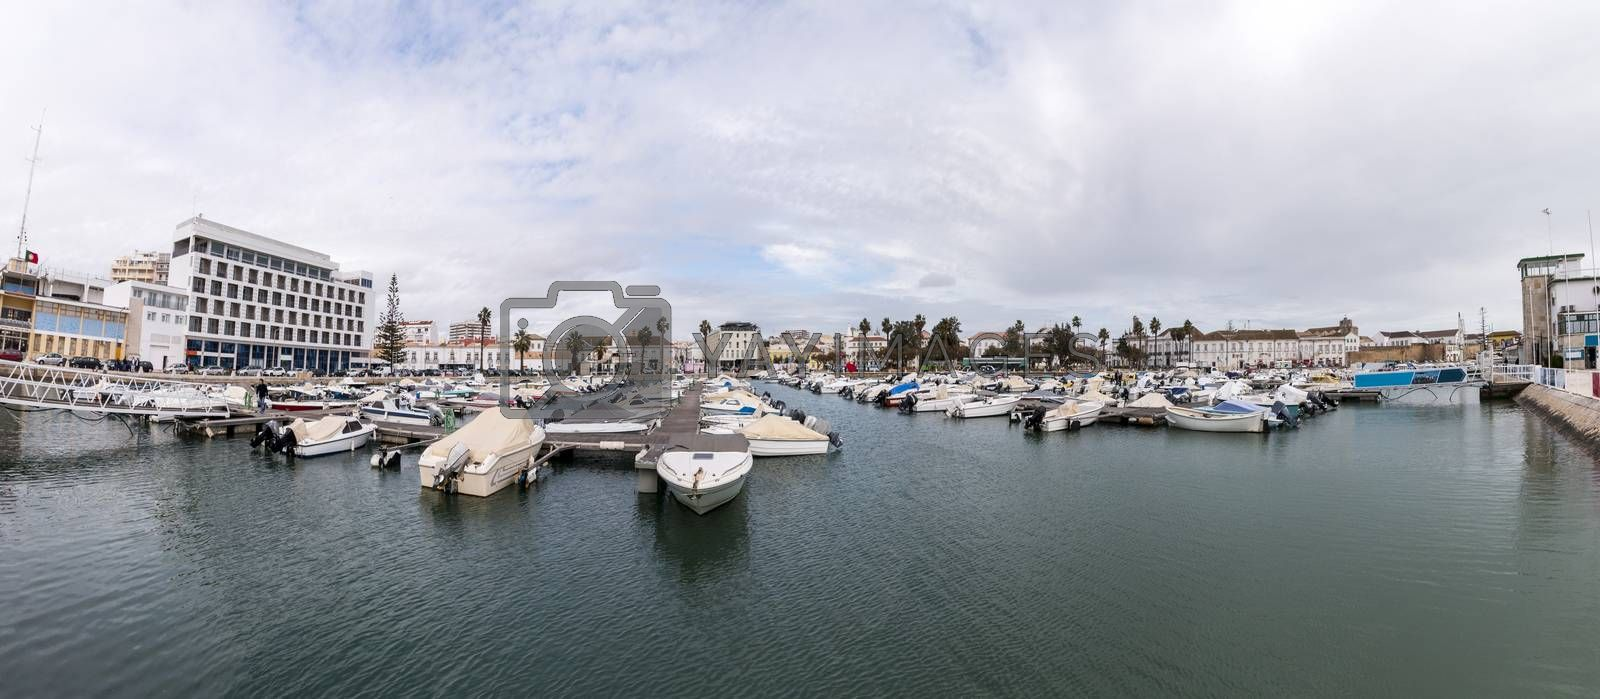 Wide view of Faro city docks with fishing and recreational boats.